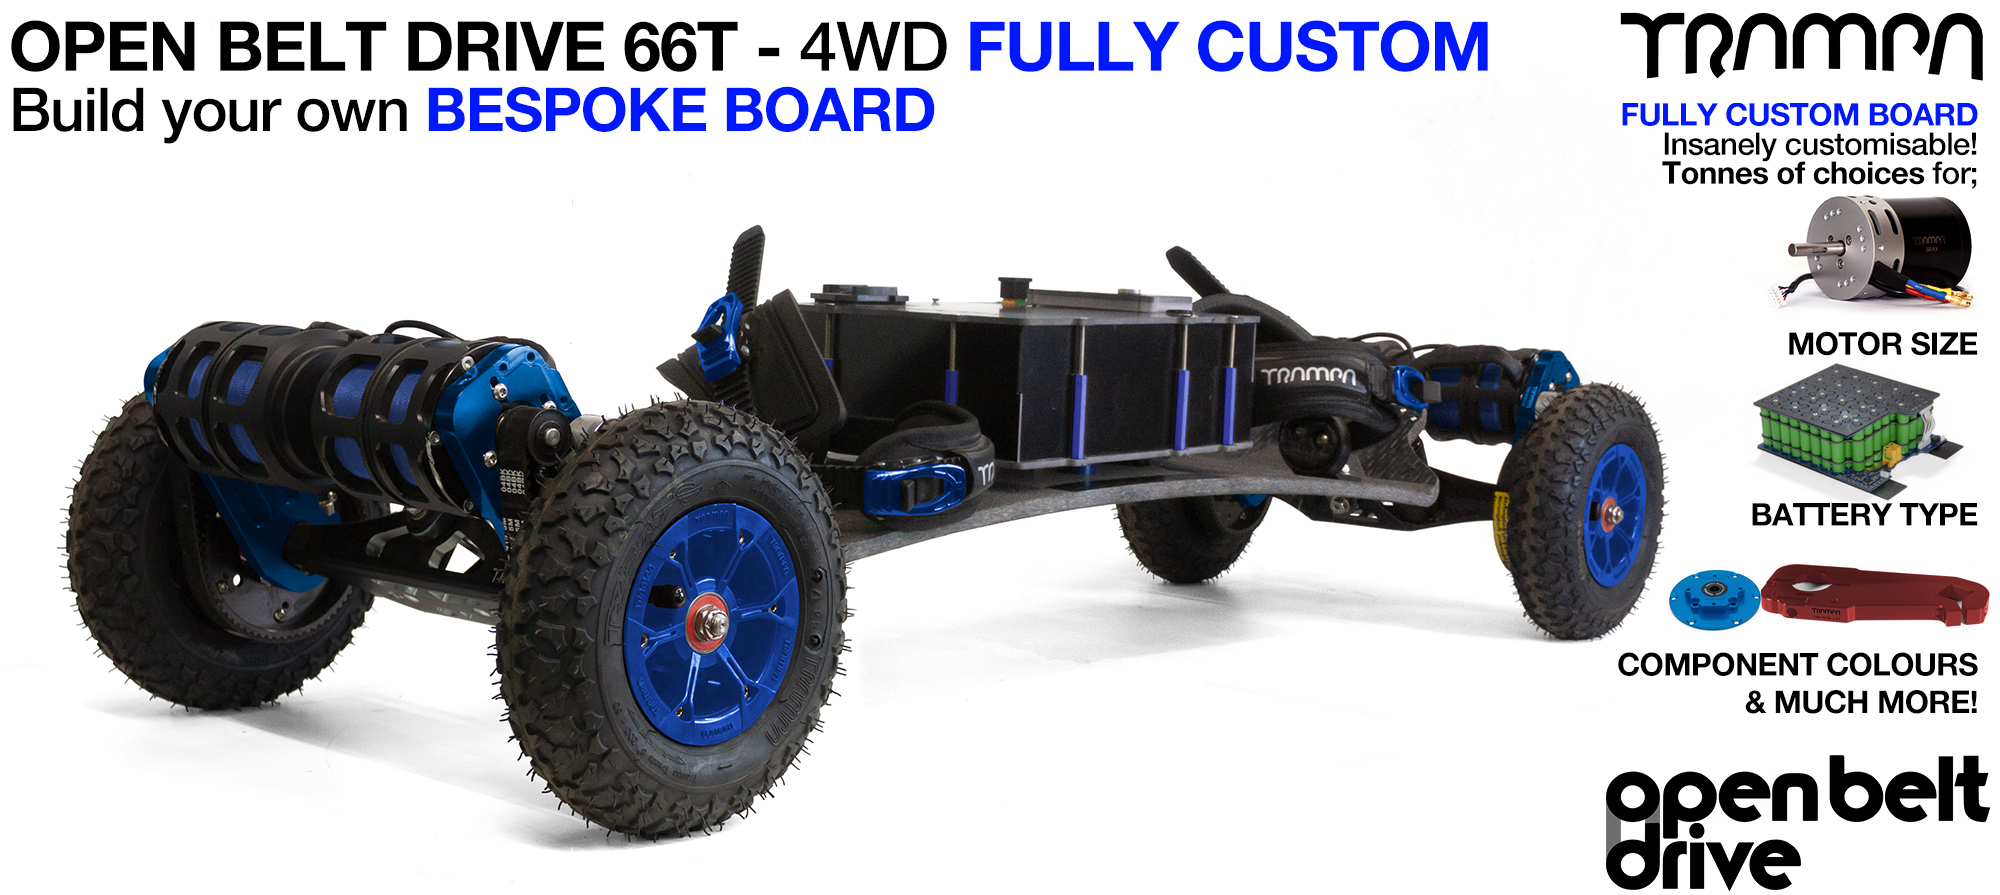 4WD 66T Open Belt Drive TRAMPA Electric Mountainboard with 8 Inch Wheels & 66 Tooth Pulleys - CUSTOM